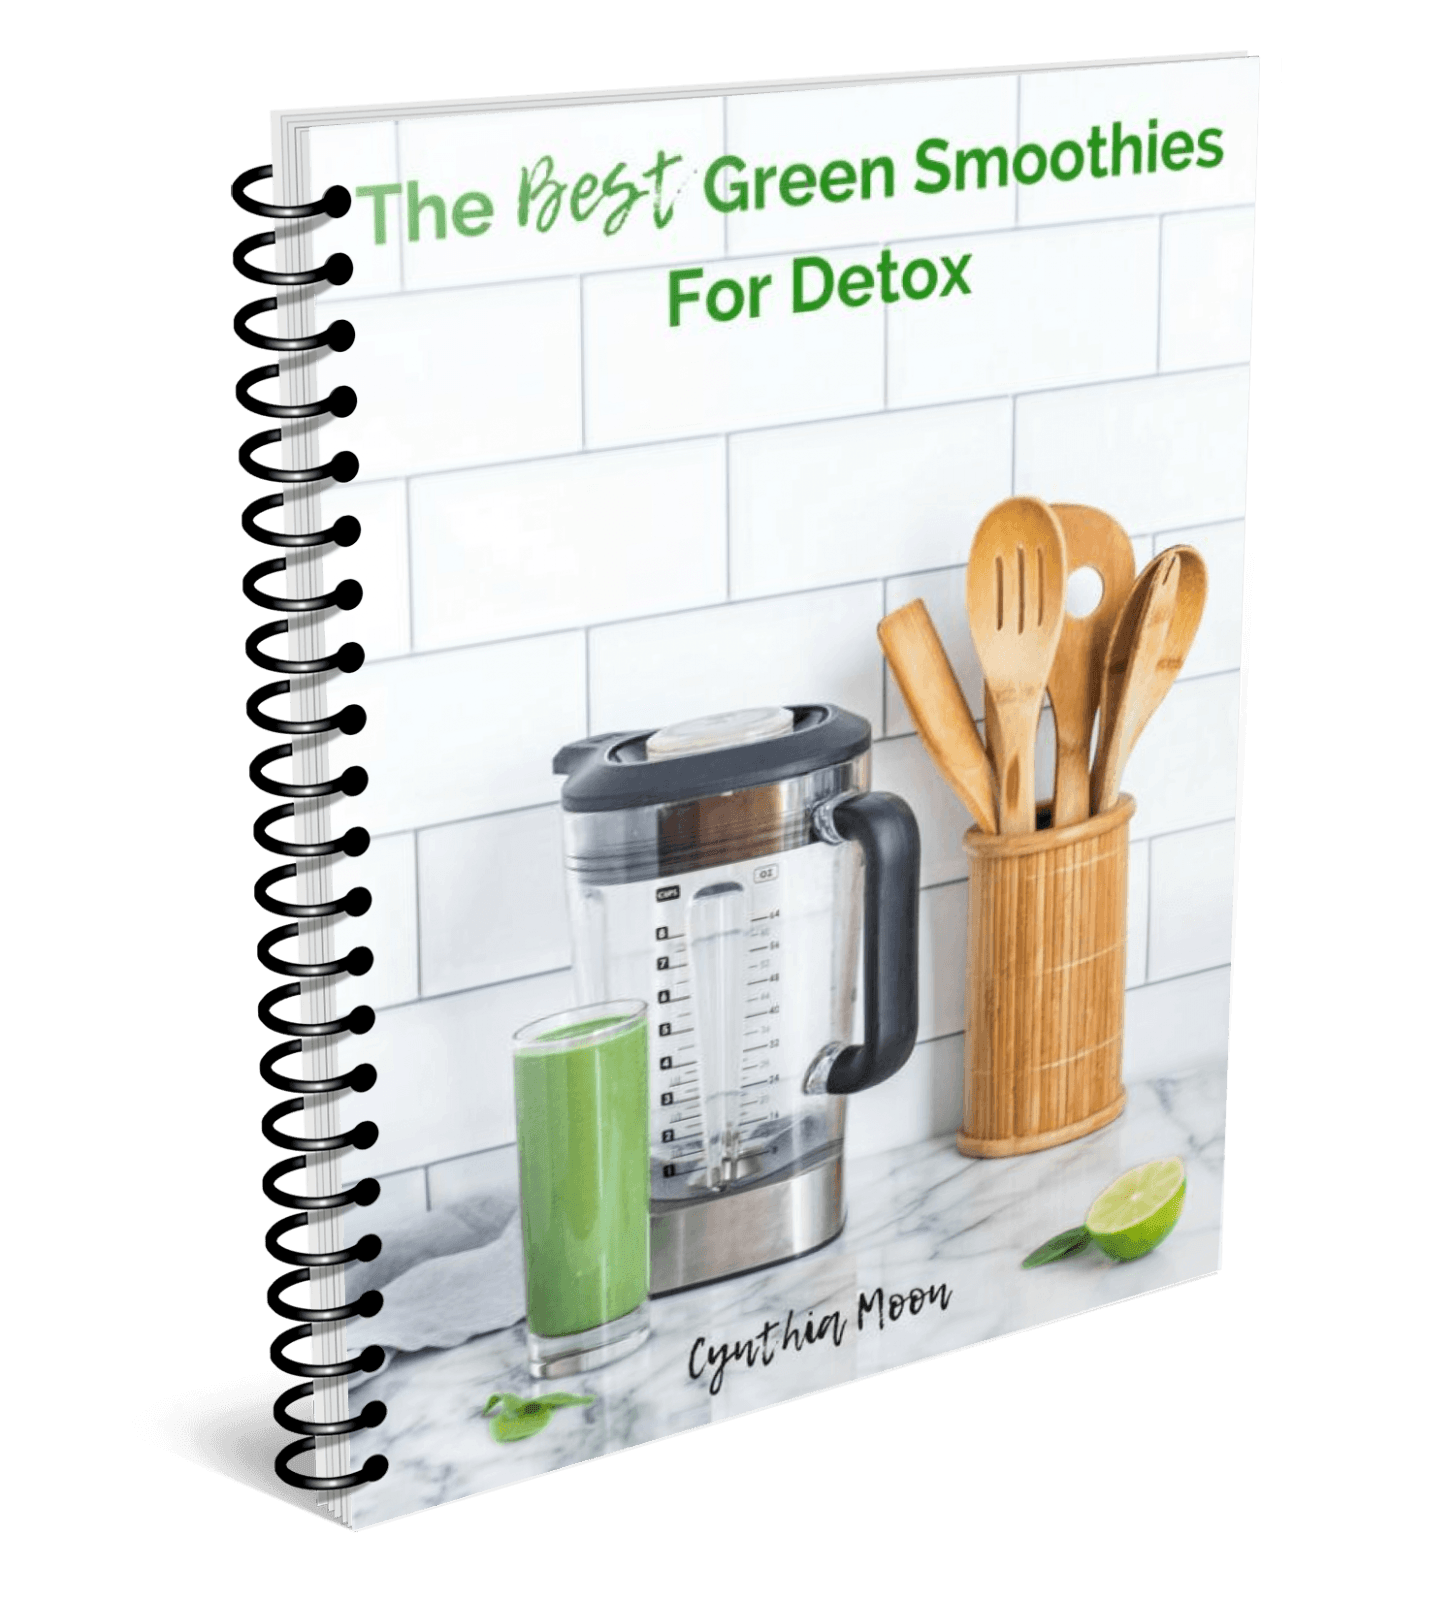 Best Smoothie for Detox Cynthia Moon